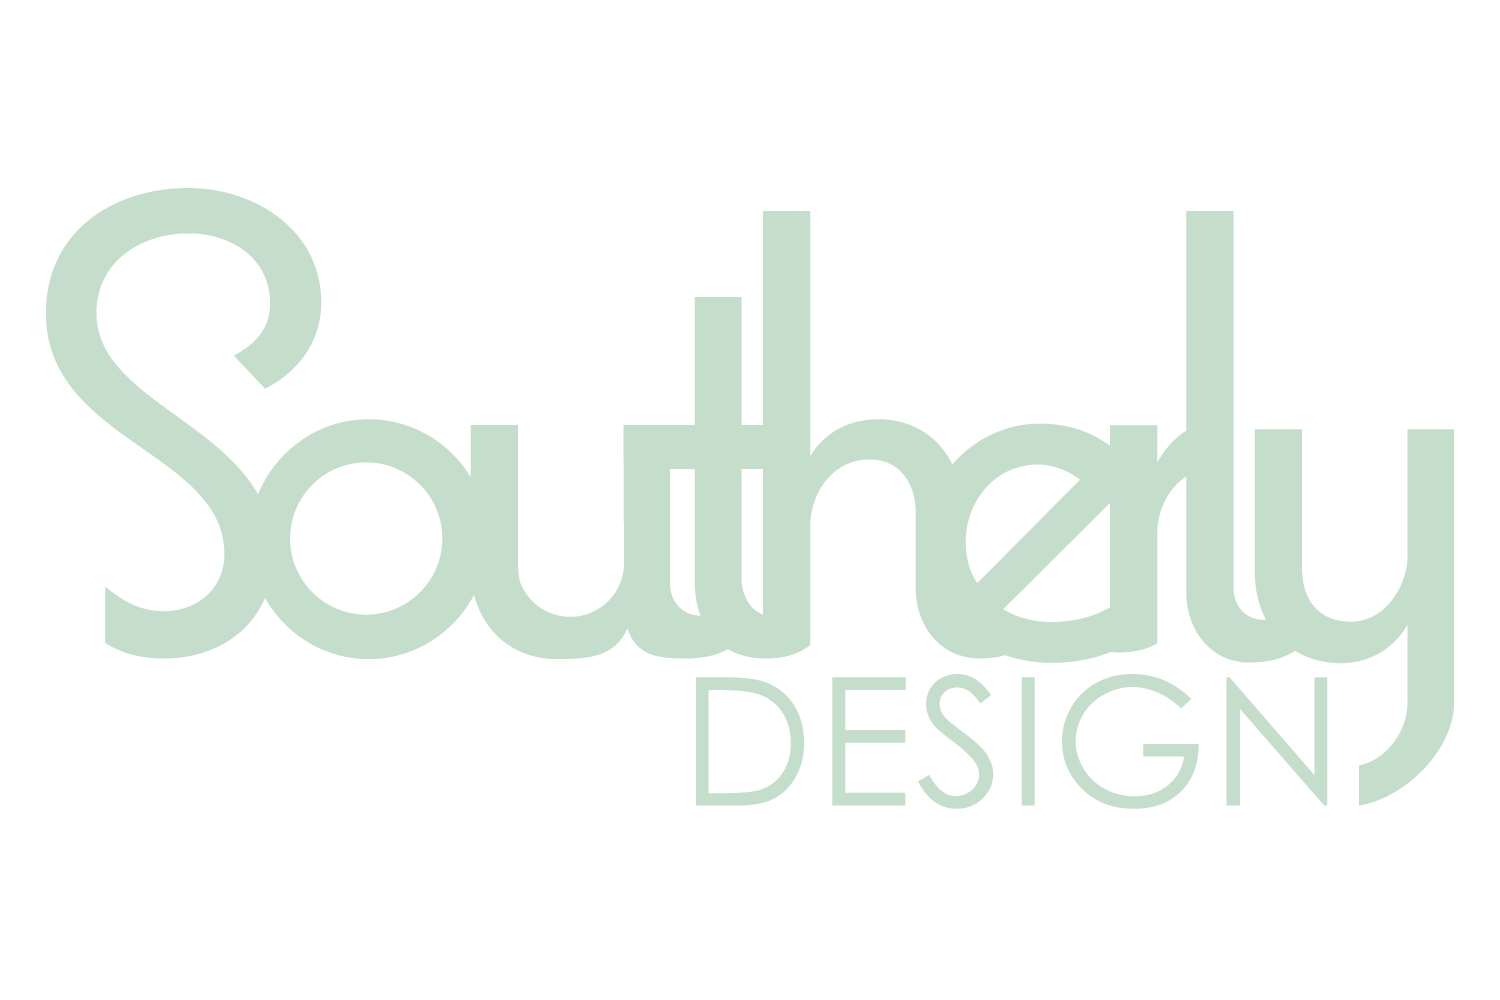 Southerly Design